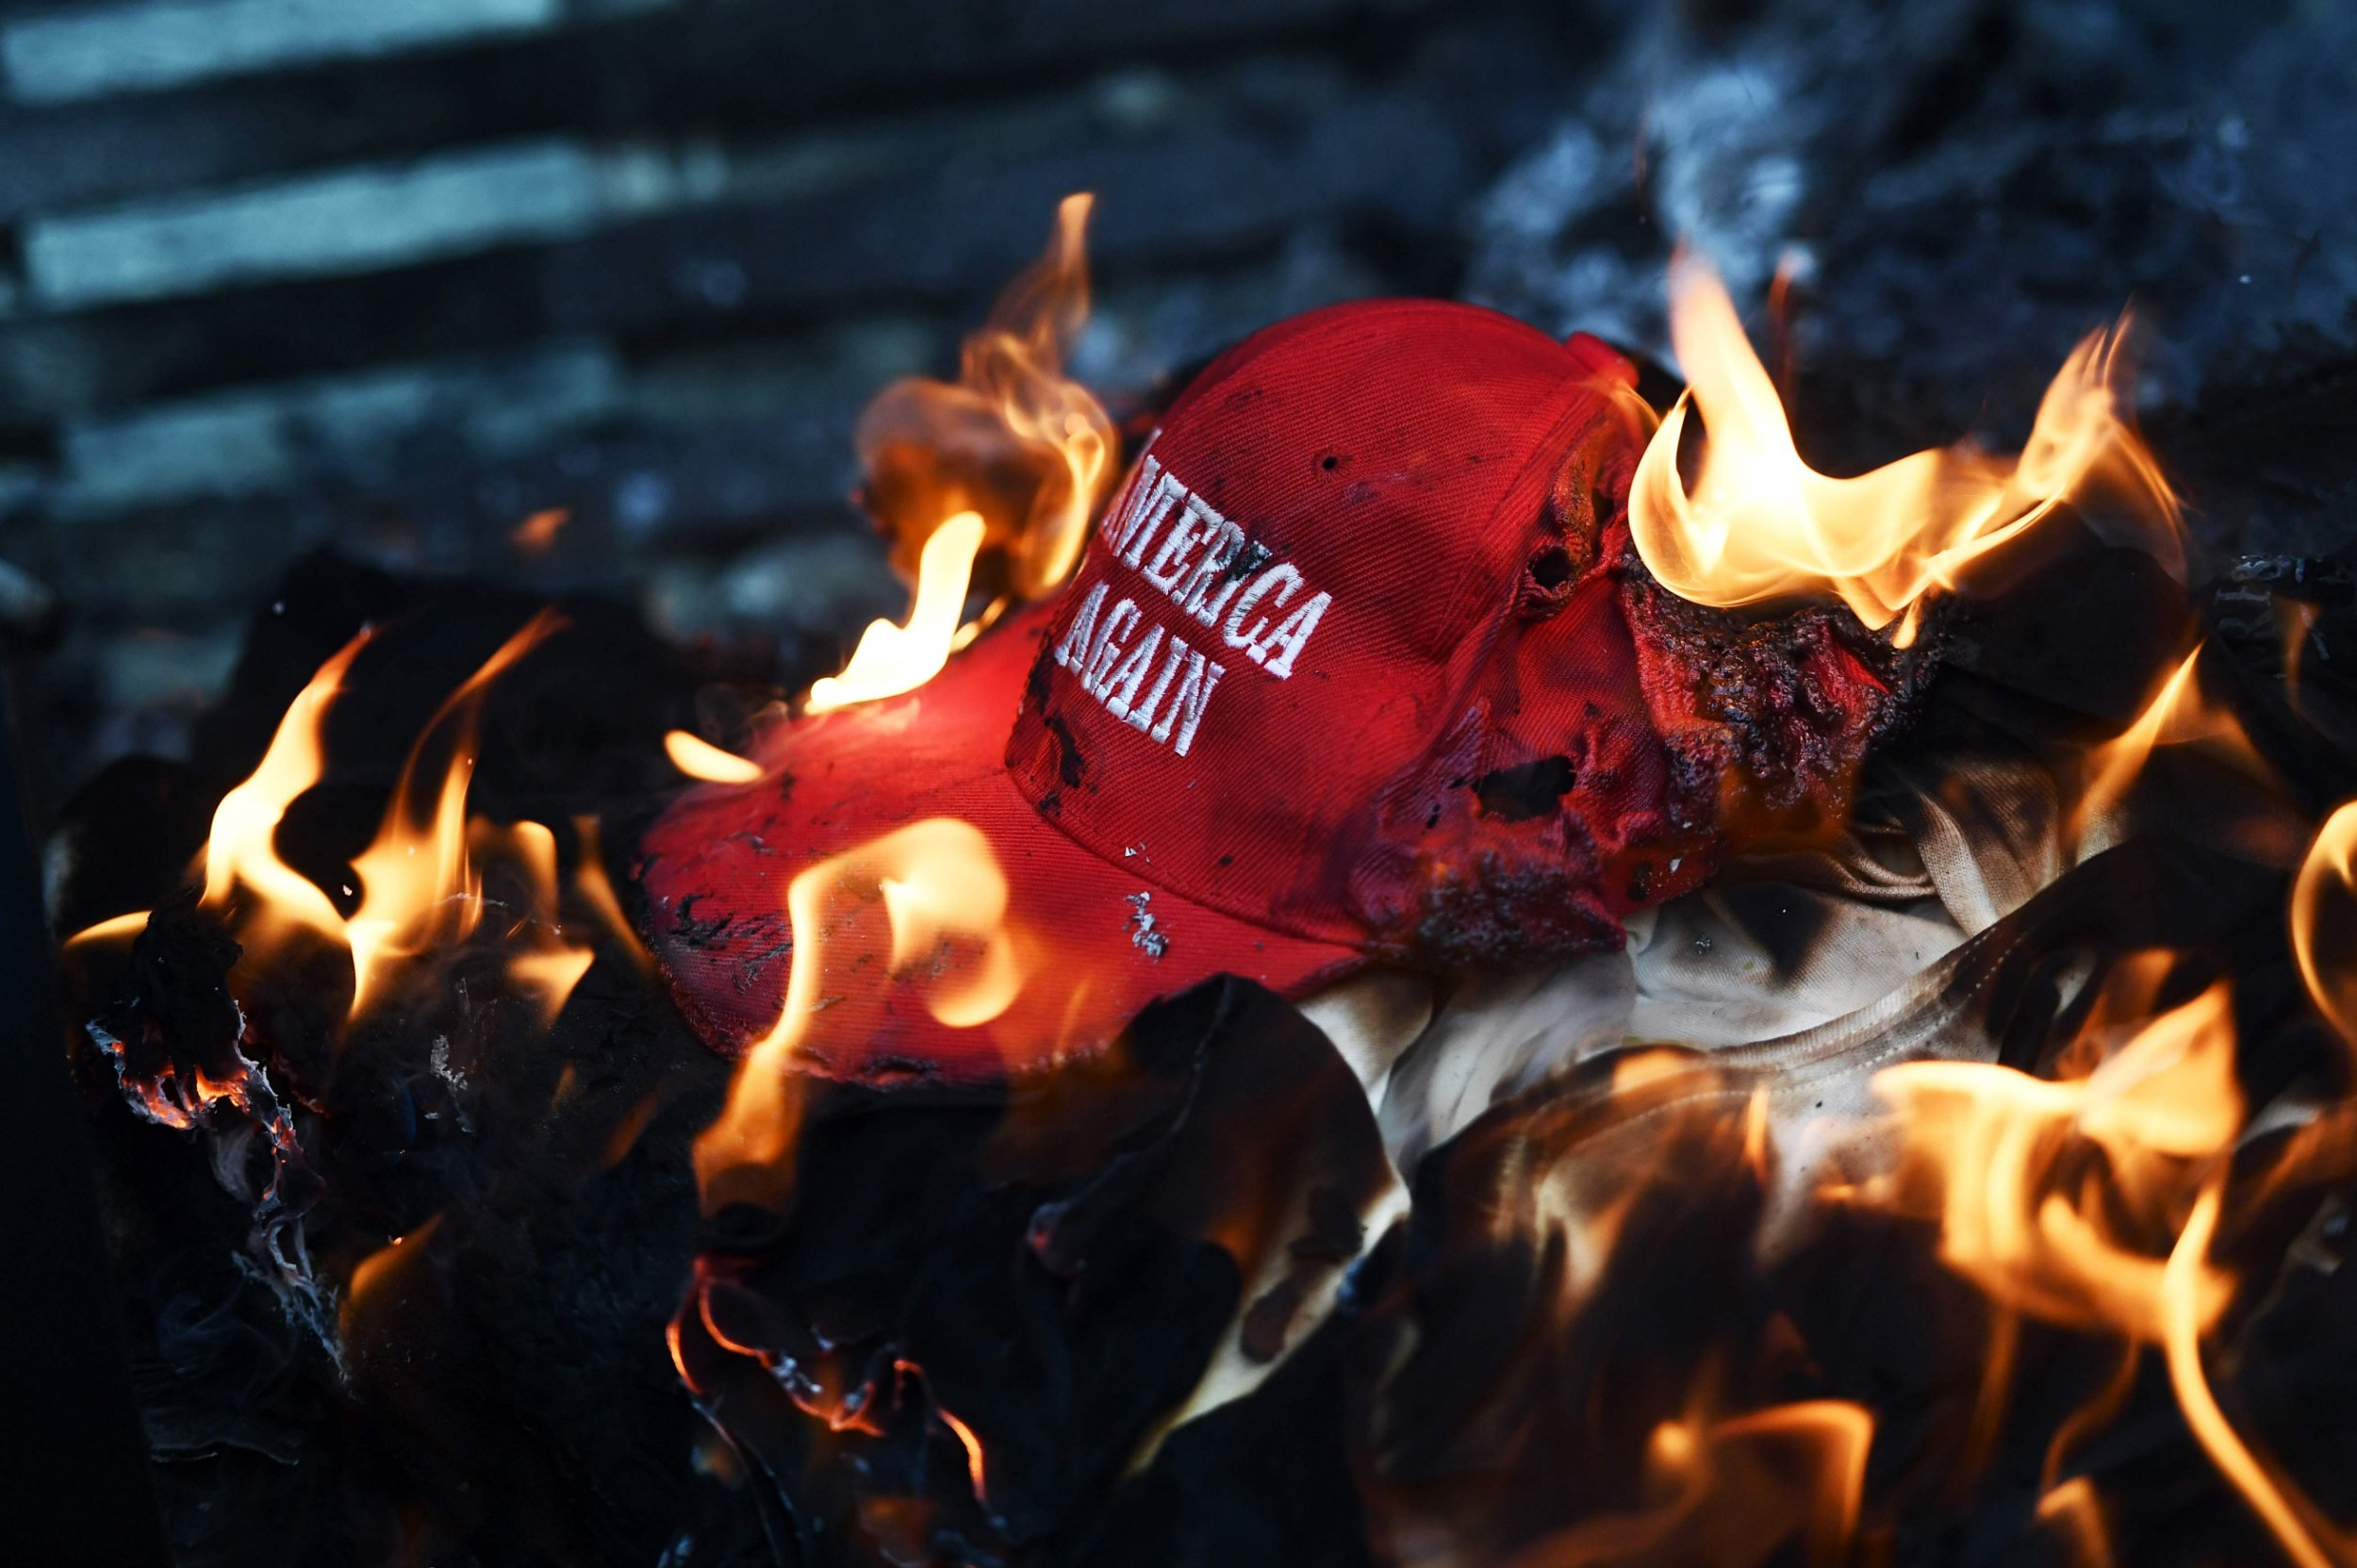 """Anti-Trump demonstrator set a """"Make America Great Again"""" hat on fire in Washington, DC, on January 20, 2107. Masked, black-clad protesters carrying anarchist flags smashed windows and scuffled with riot police Friday in downtown Washington, blocks away from the route of the parade in honor of newly sworn-in President Donald Trump. / AFP PHOTO / Jewel SAMADJEWEL SAMAD/AFP/Getty Images"""